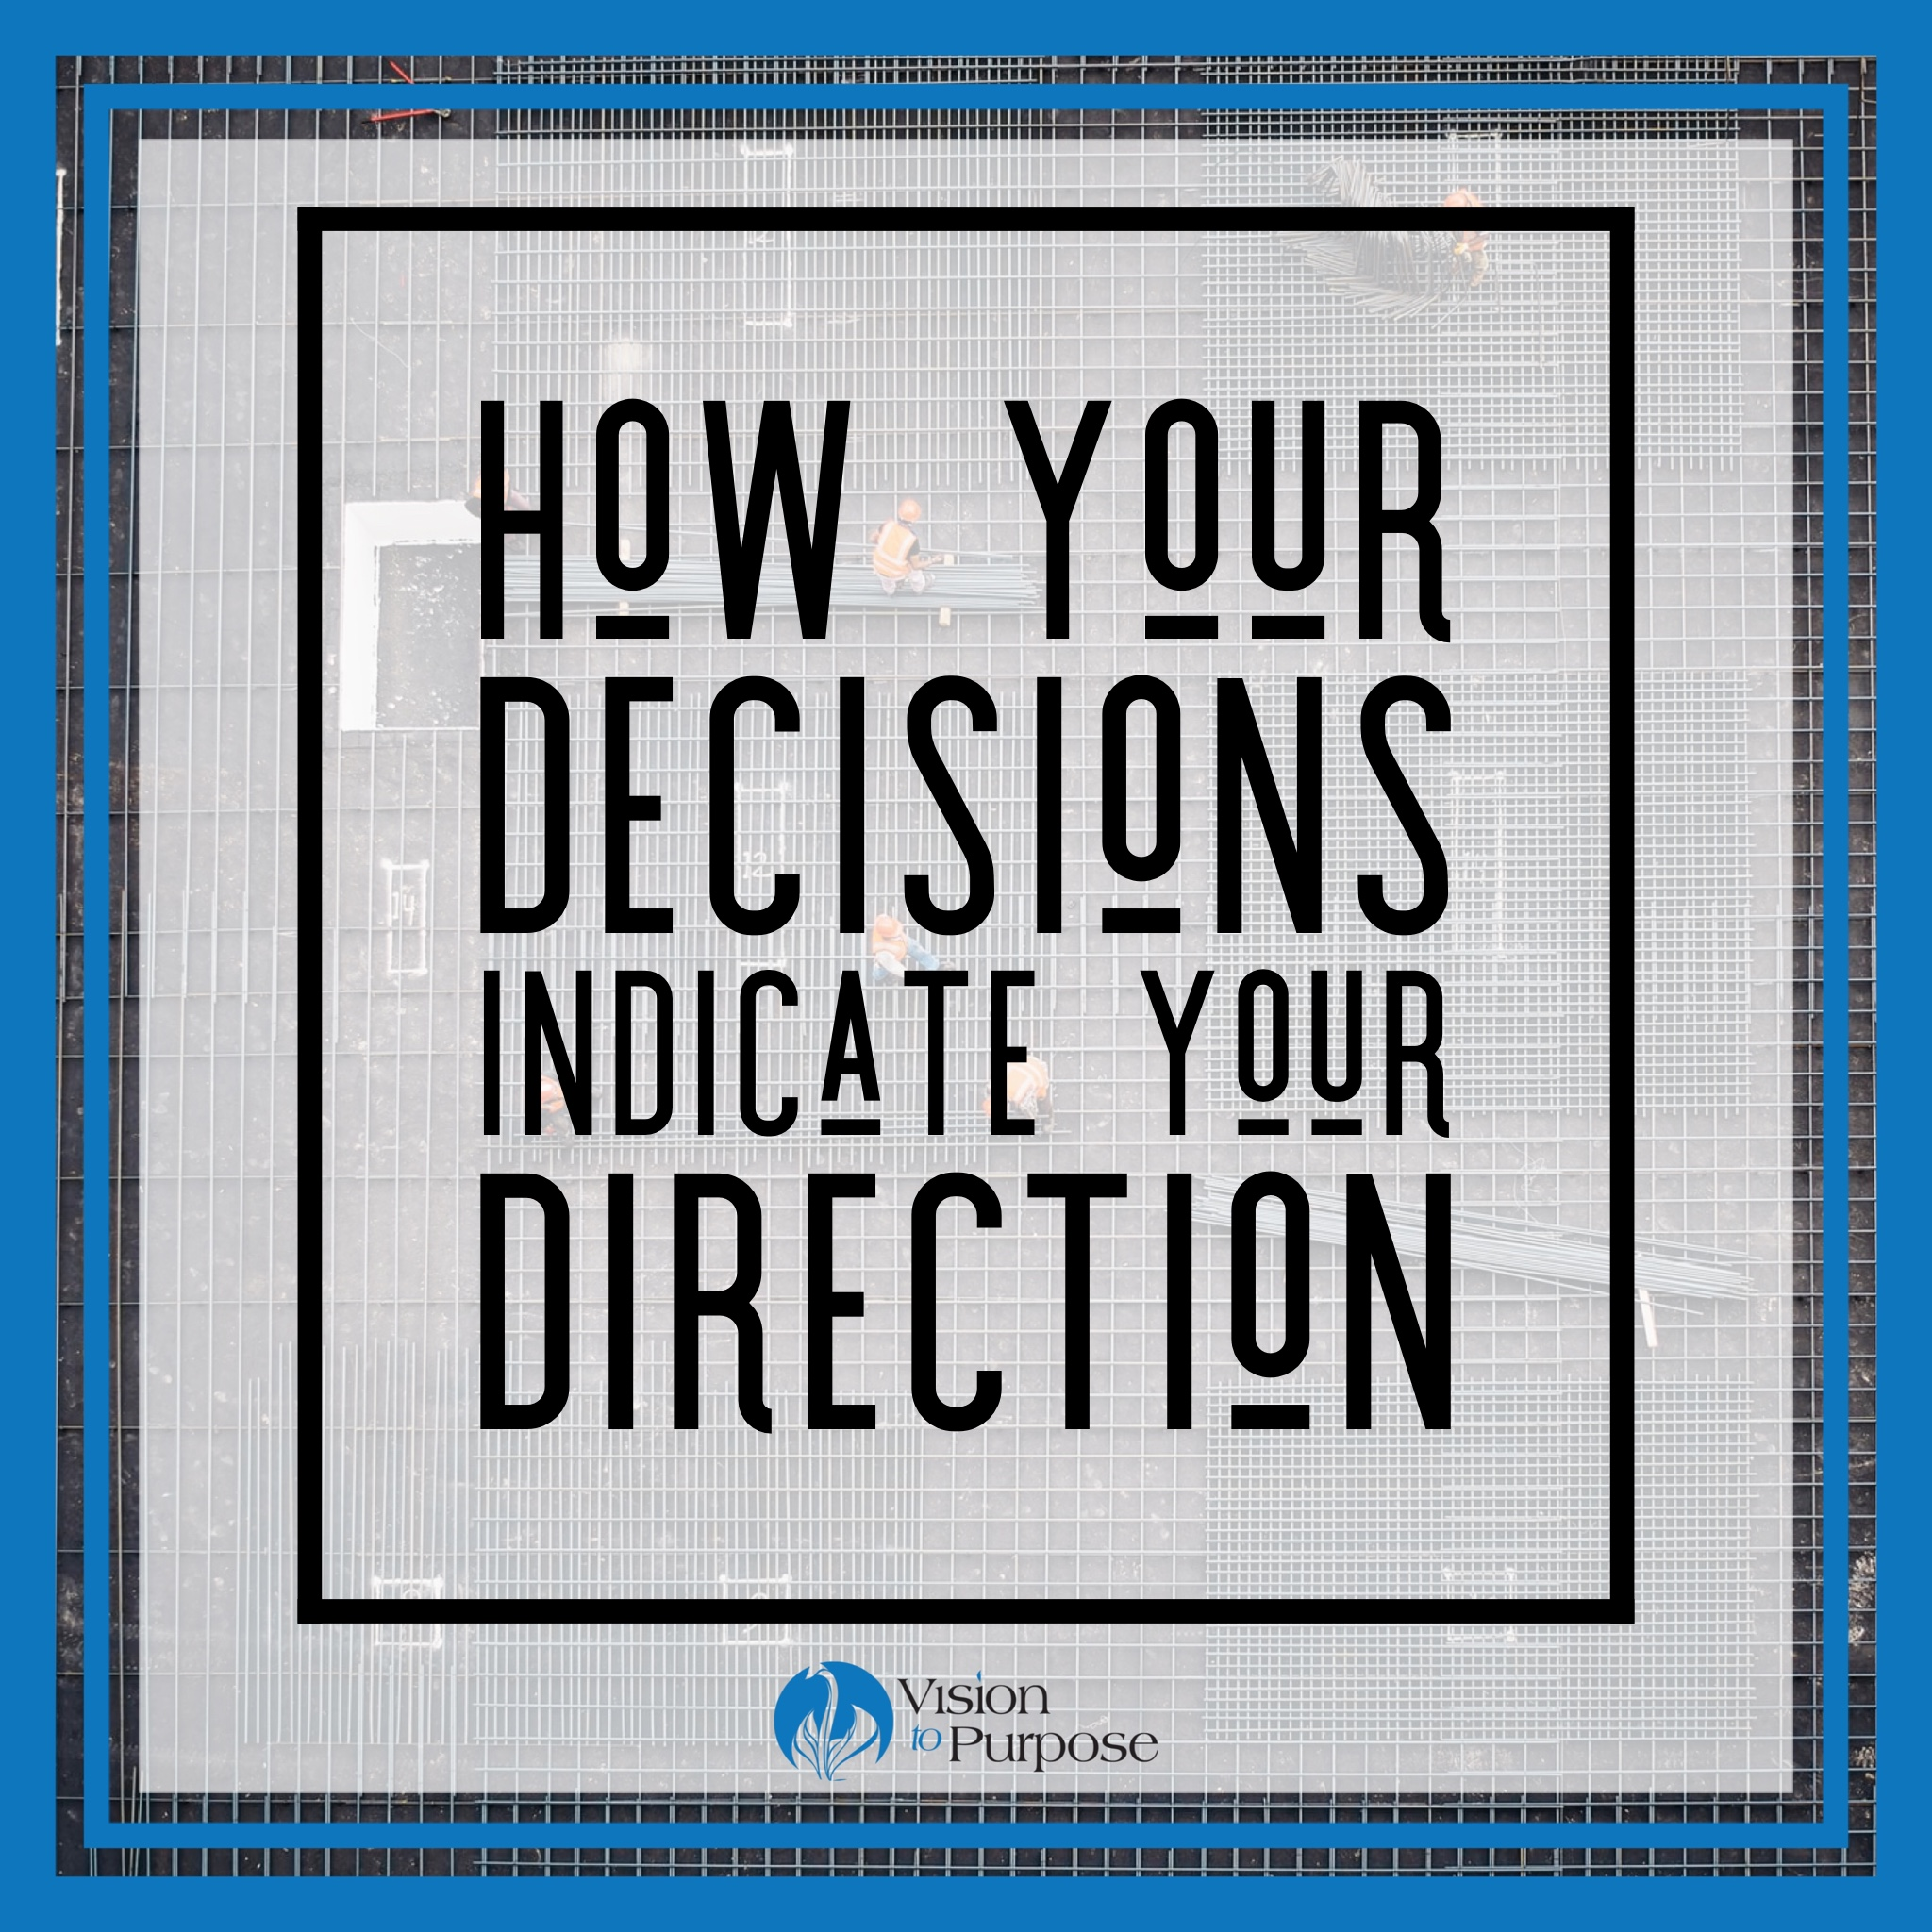 Decisions equal Direction